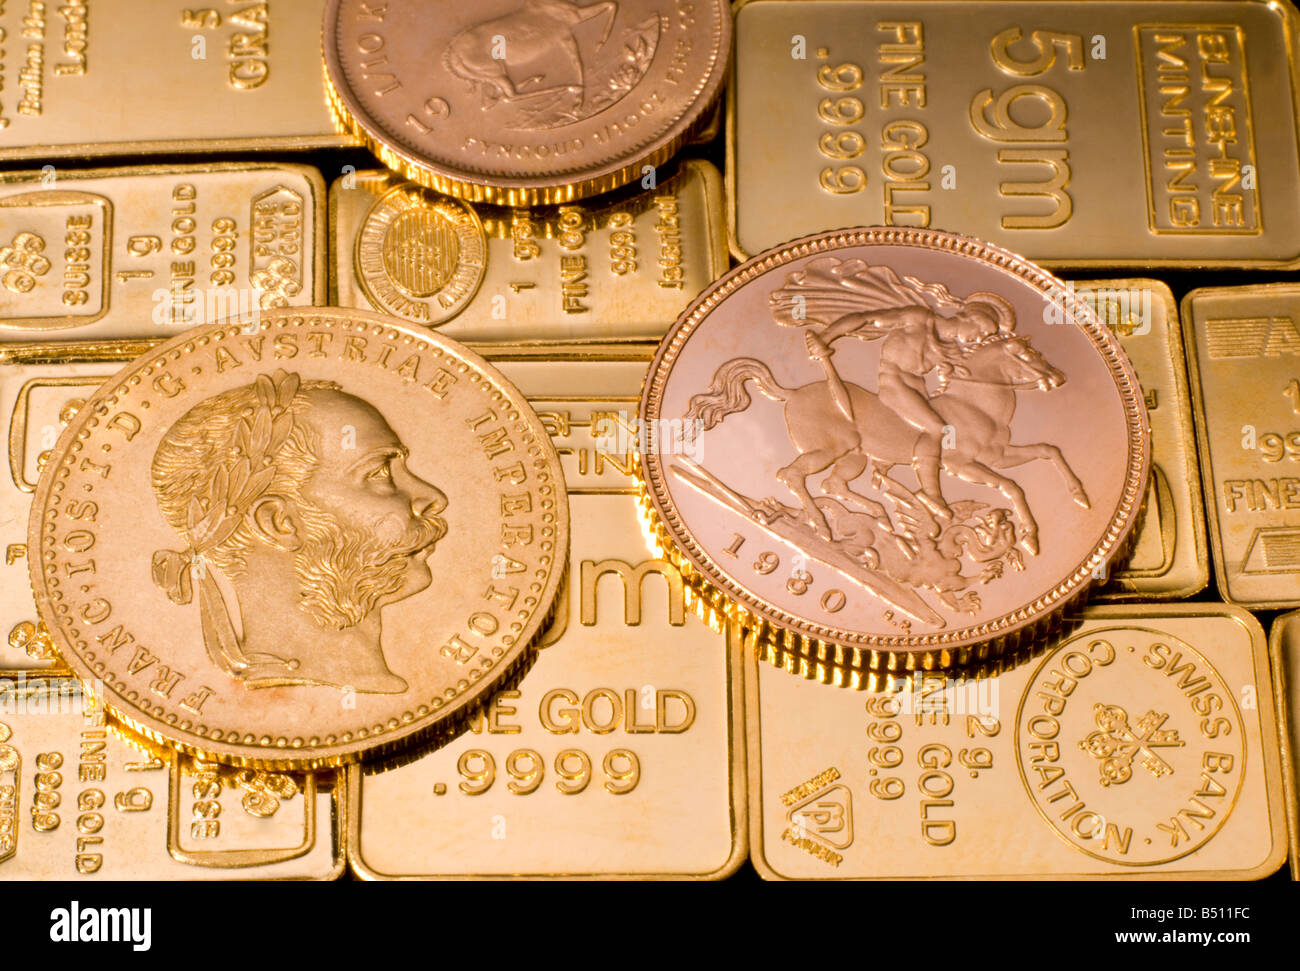 gold bullion in small bars and coins including half sovereign stock photo royalty free image. Black Bedroom Furniture Sets. Home Design Ideas